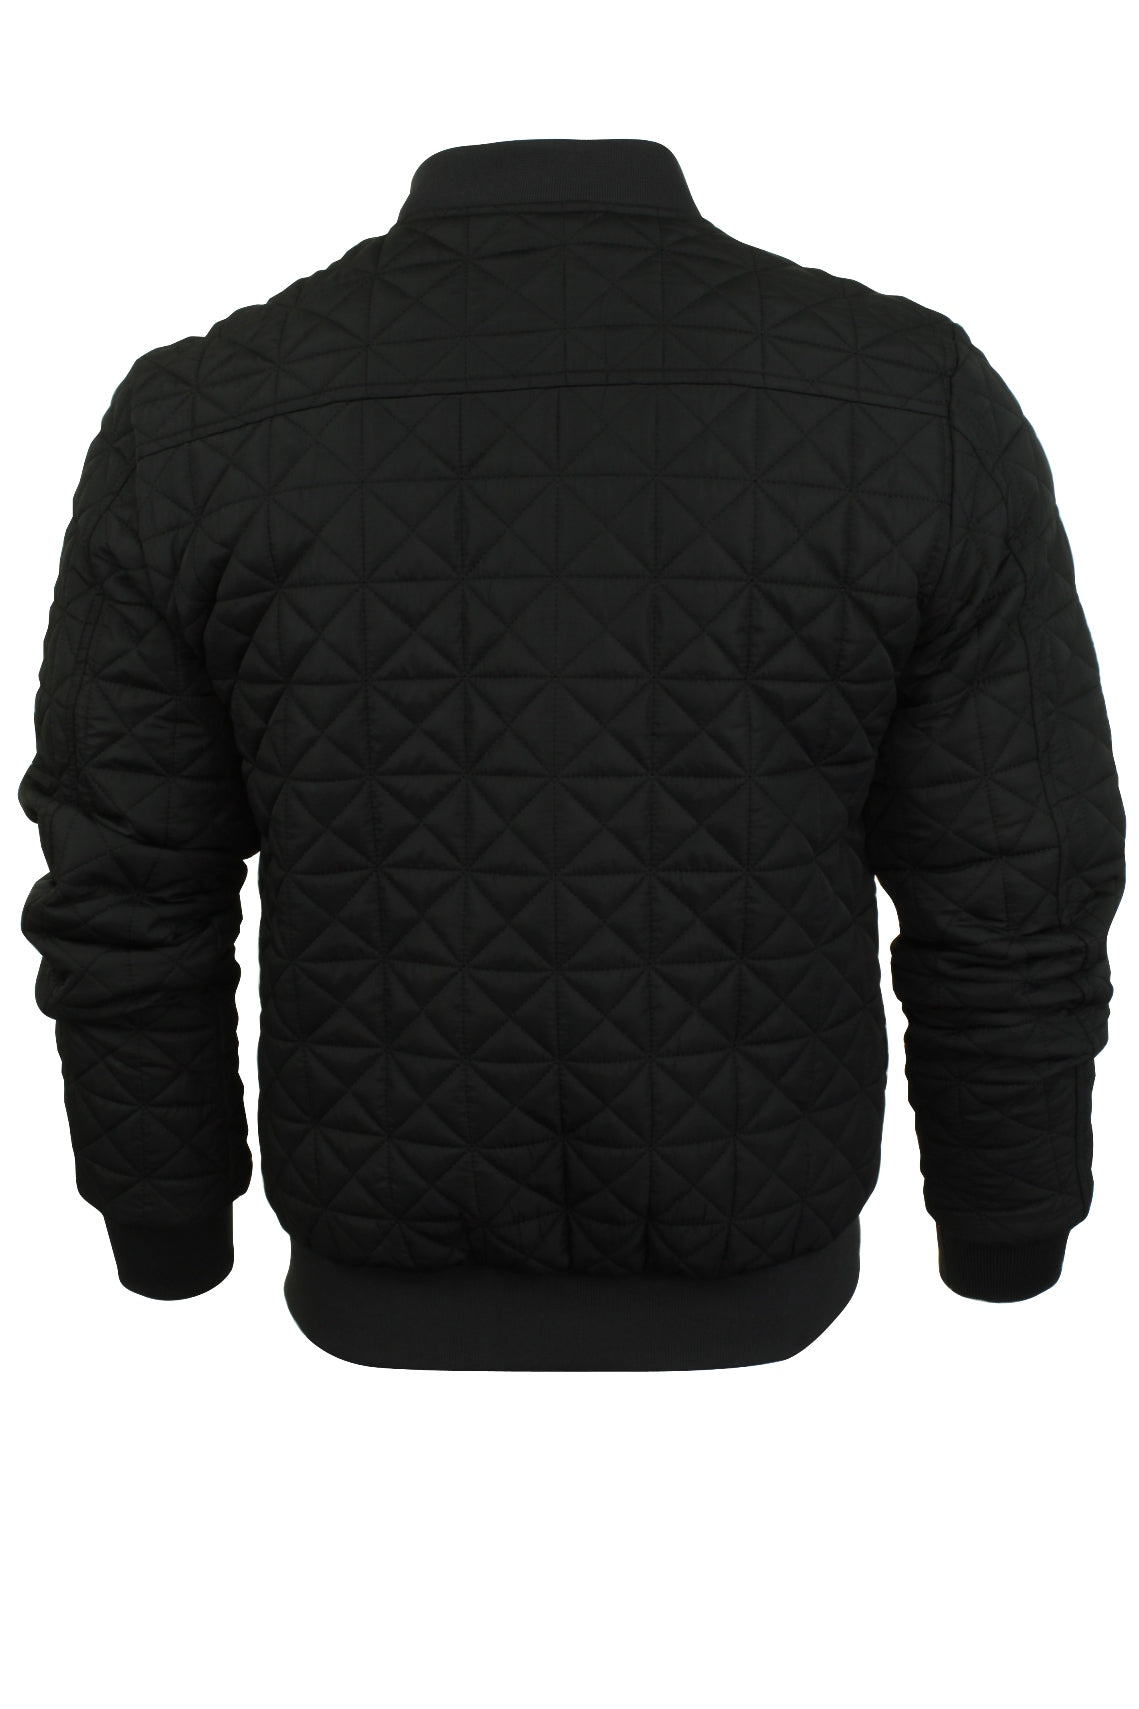 Mens Quilted Bomber Jacket by Brave Soul 'Bryan'-3